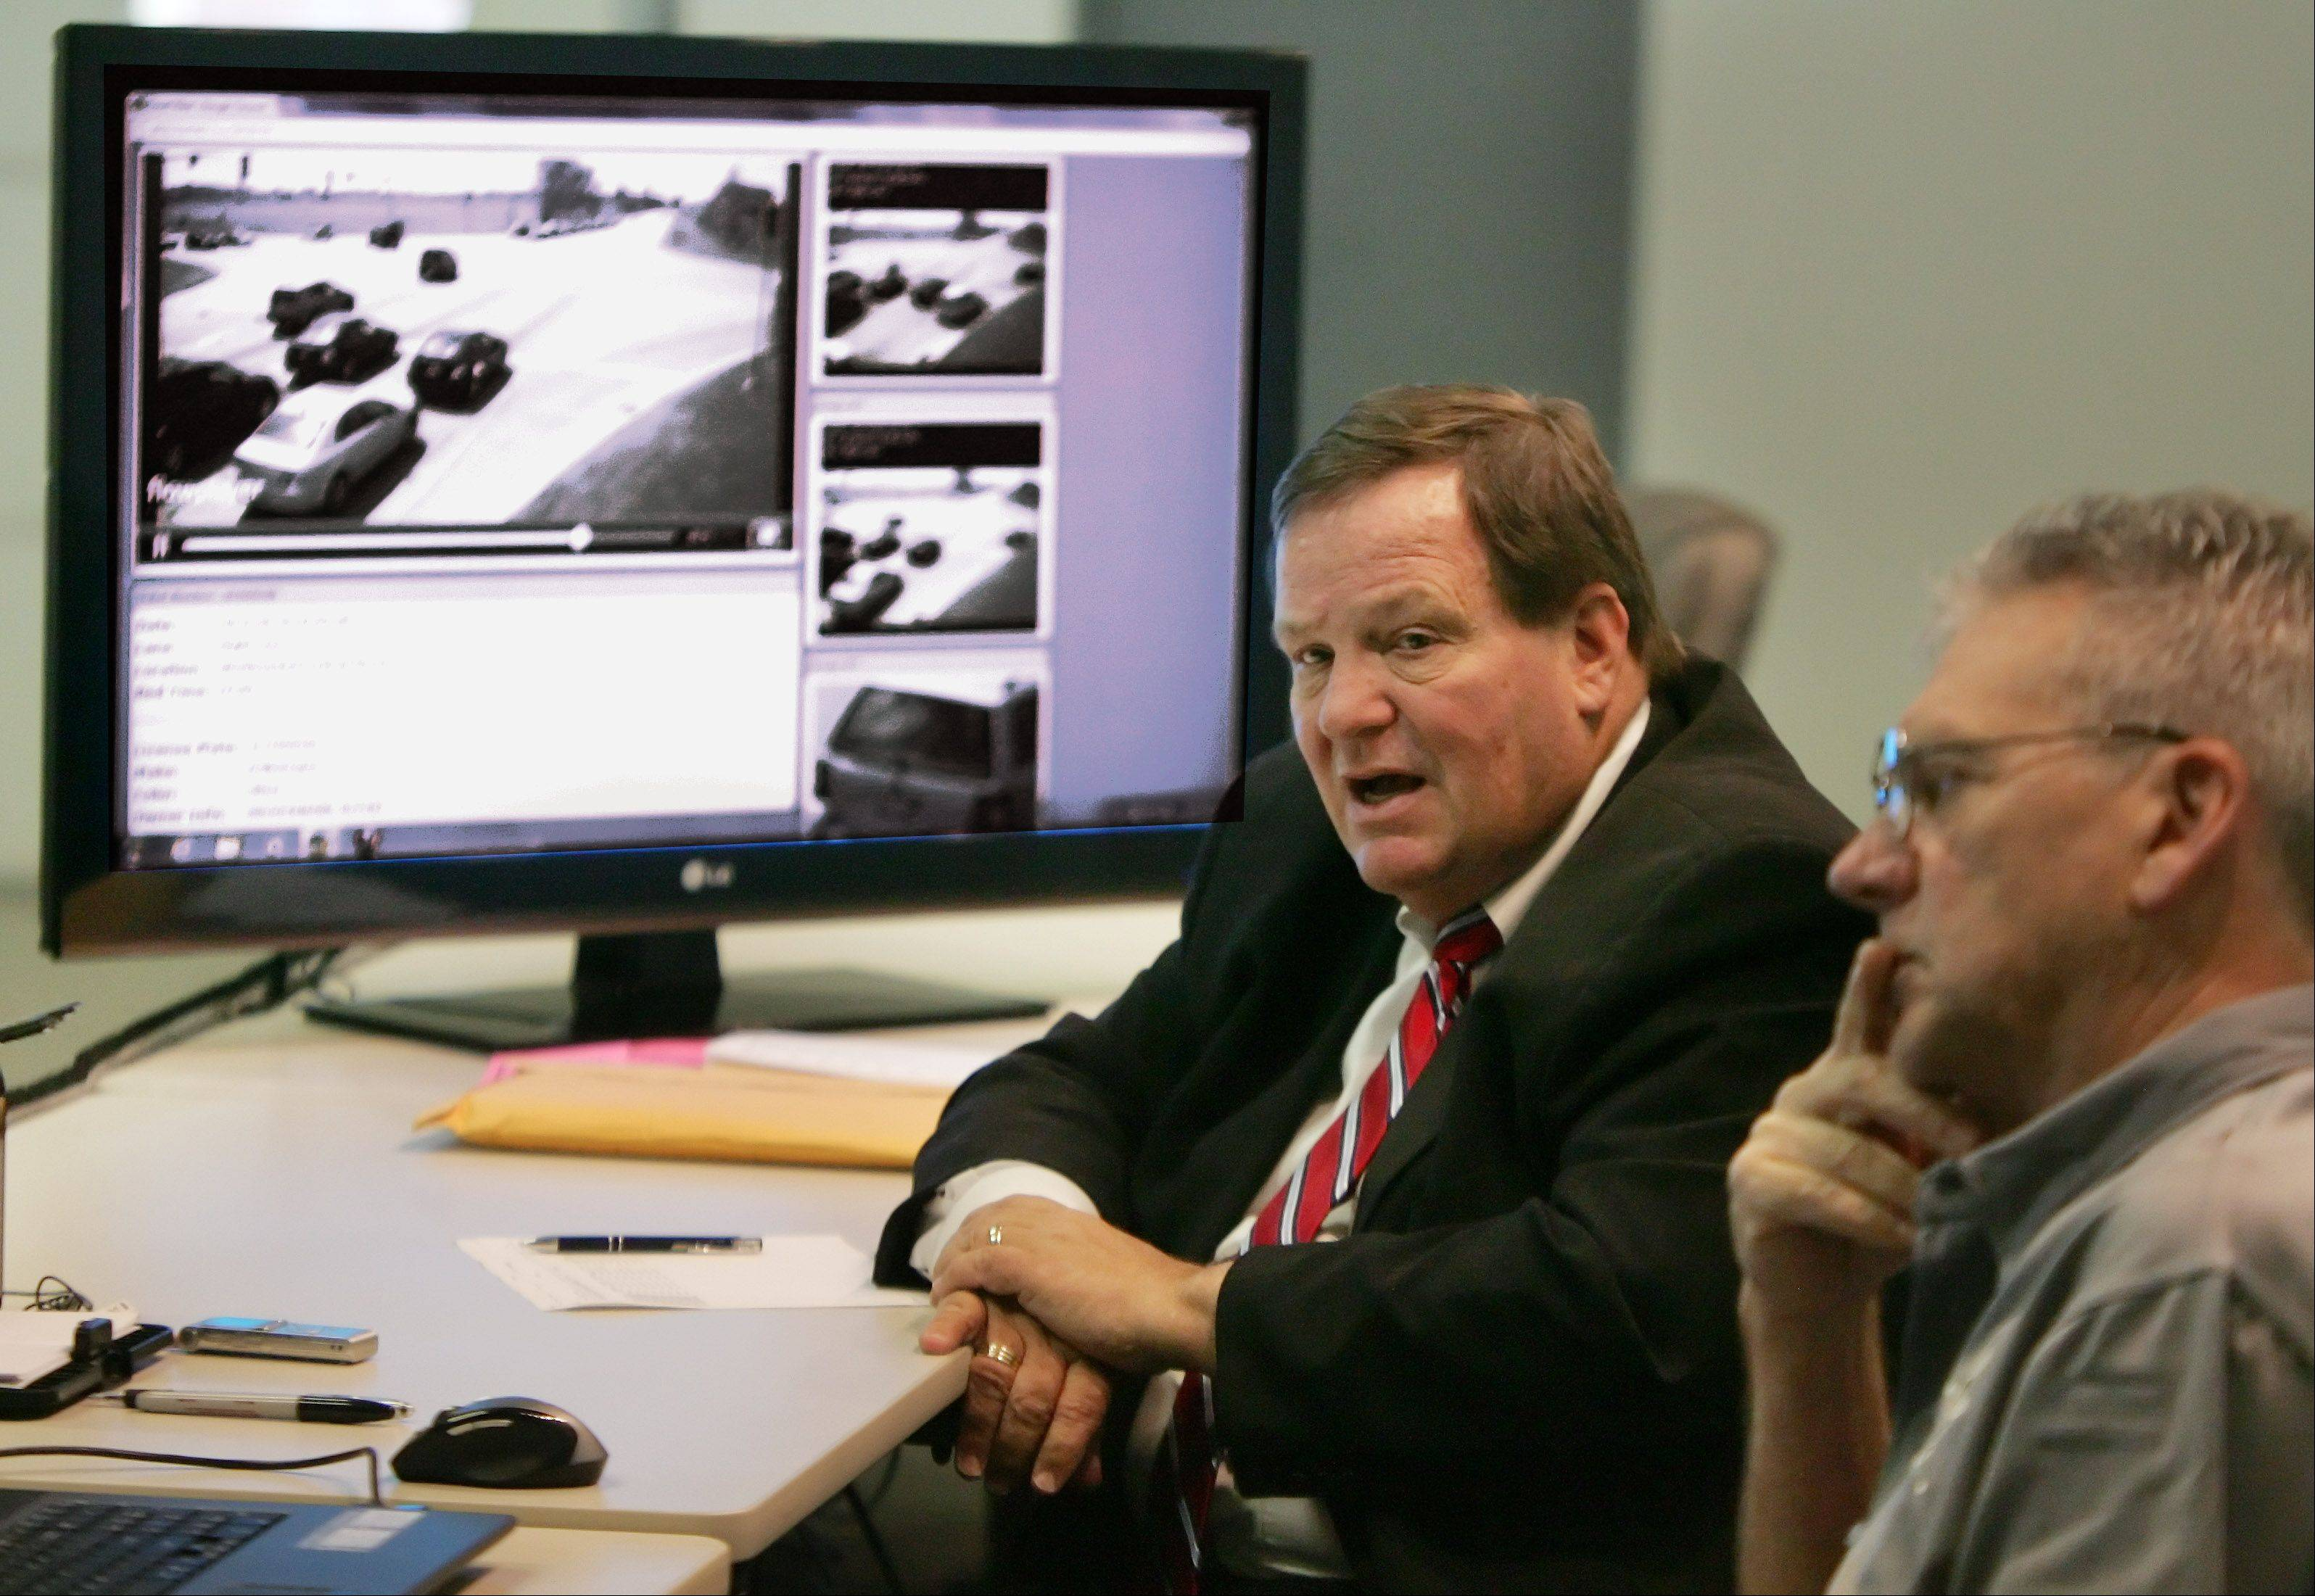 Former Lake County circuit court Chief Judge Henry Tonigan III presides over contested red-light camera violations at the Lakemoor Police Station. He also decides adjudication hearings for small ordinance violations, such as dog-at-large violations. Court administrator Terry Counley is sitting to the right.